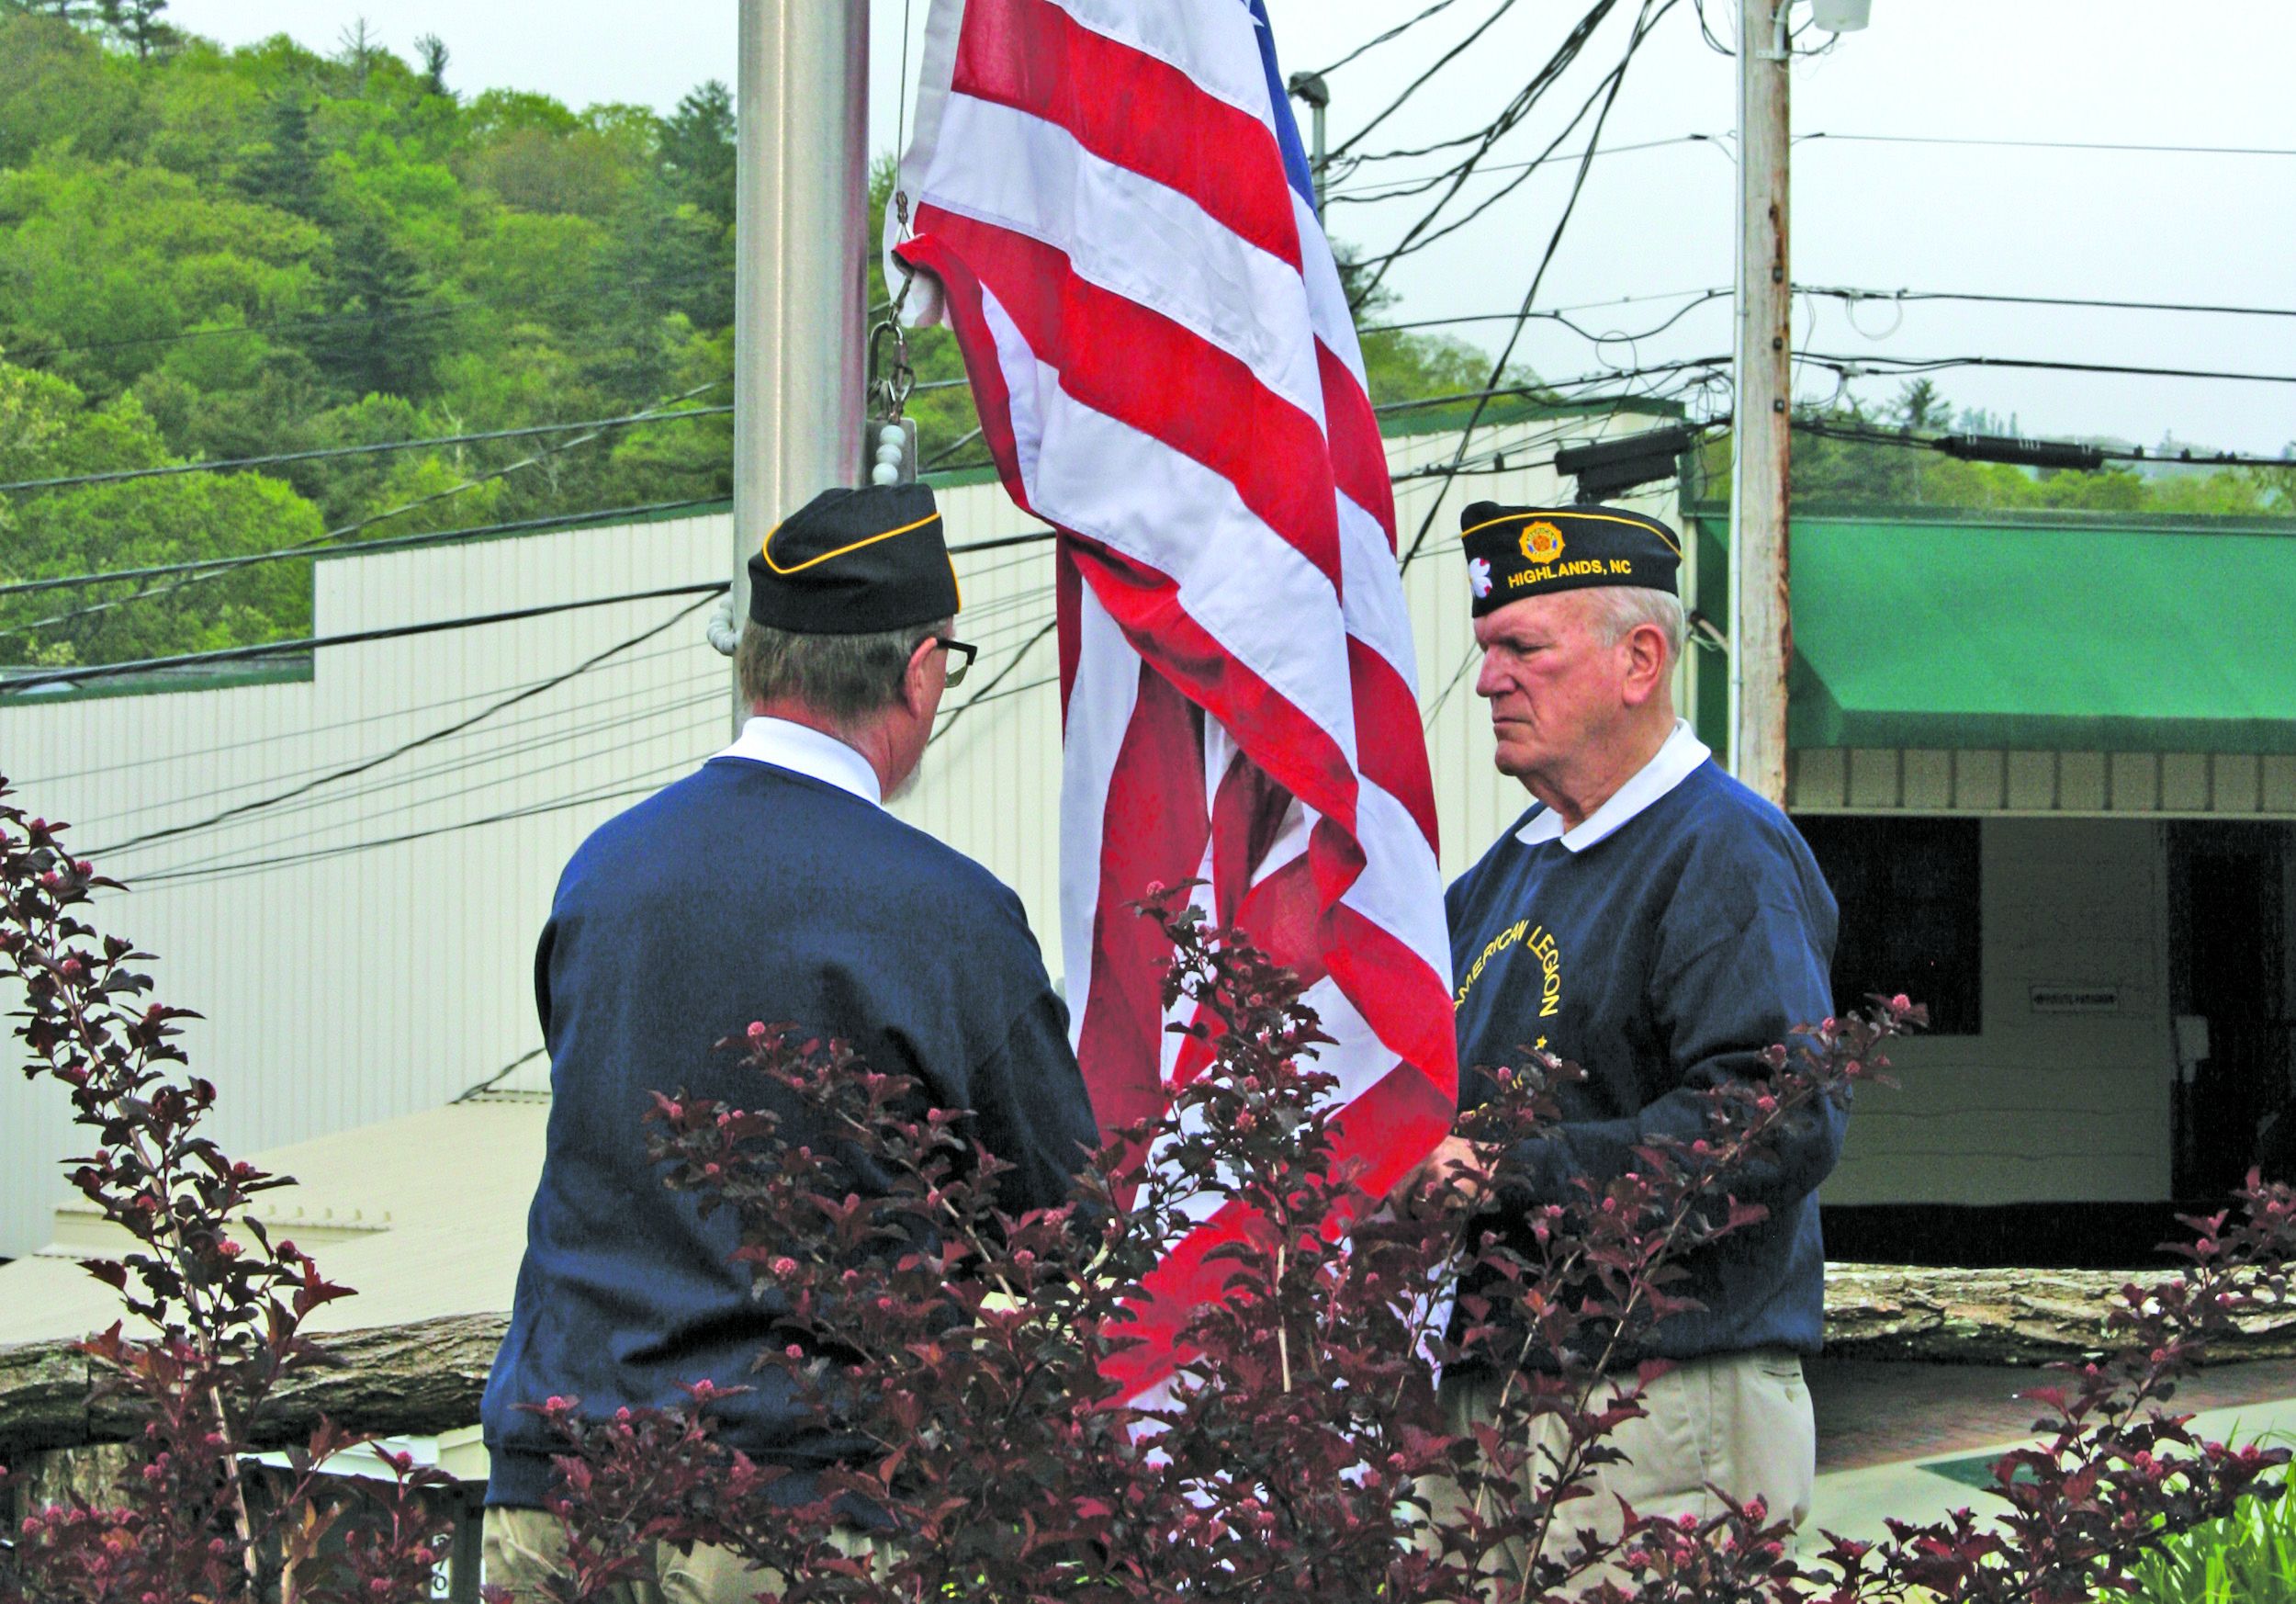 Members of Highlands American Legion Post 370 raise a new flag over the Veteran's Plaza during the annual Memorial Day ceremony on Monday.